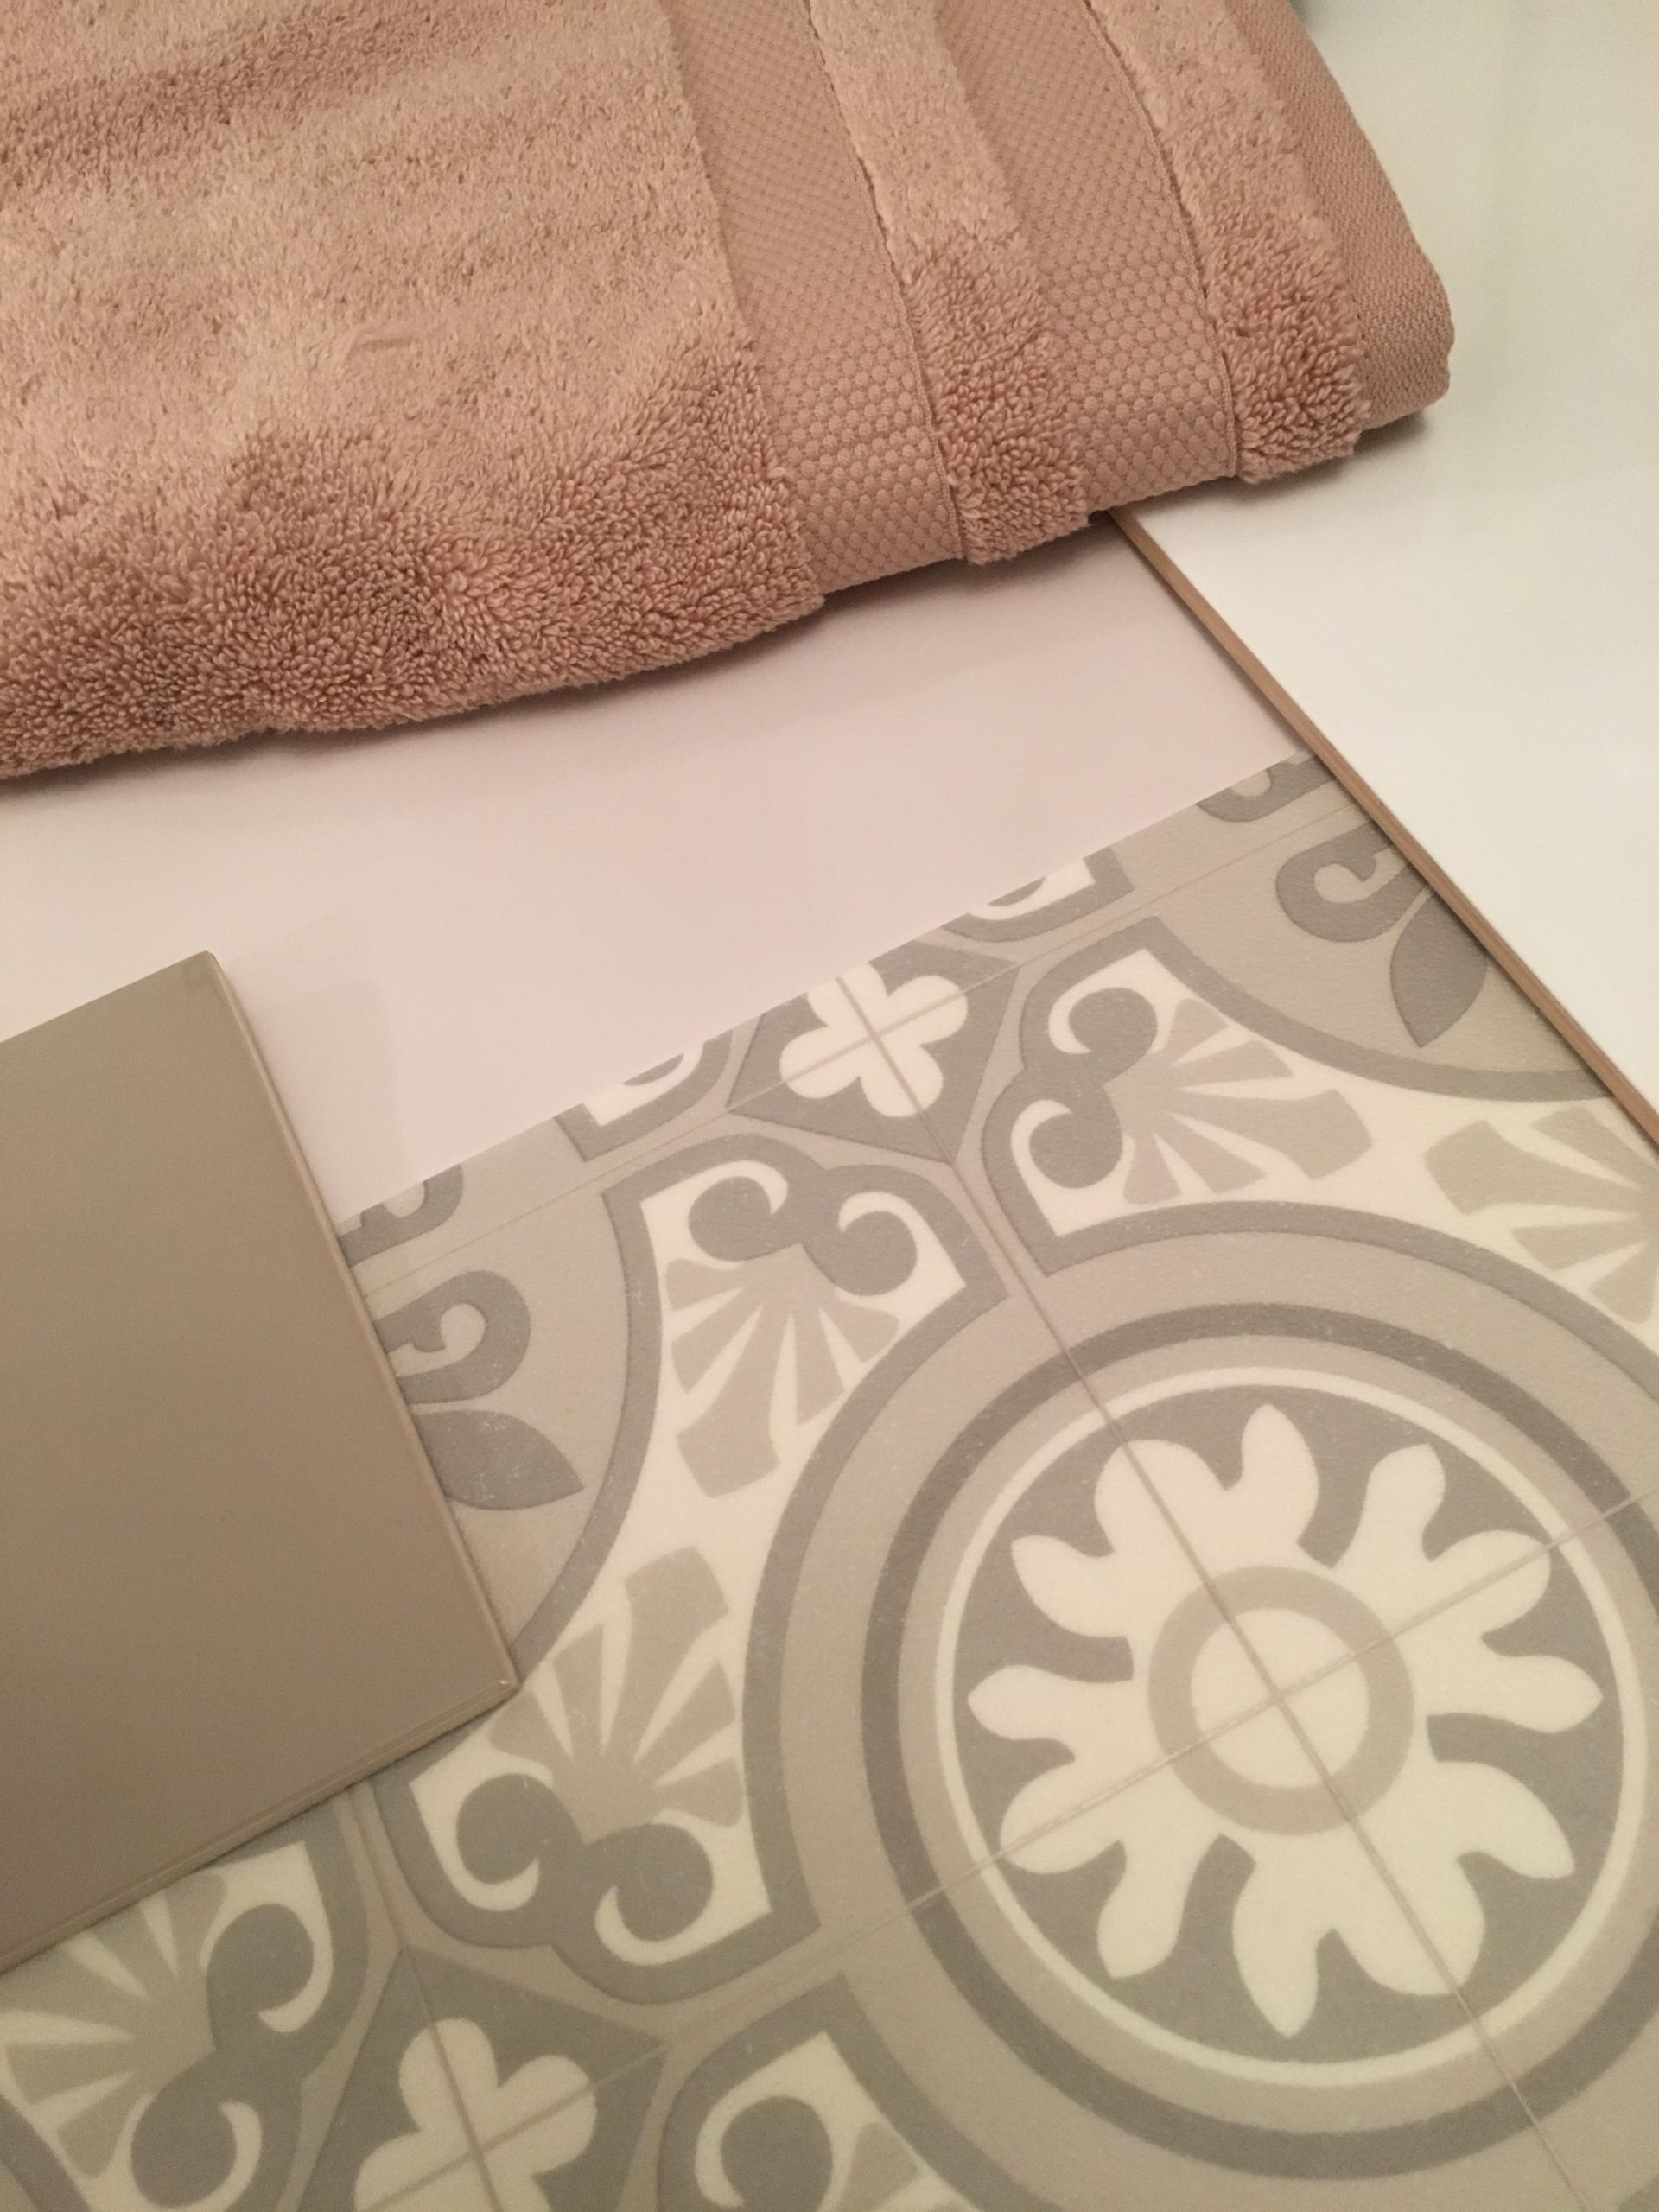 A sheet vinyl that looks like Victorian tiling - Beauflor Ultratrip Buzz Lisbon vinyl flooring shown here with the other samples for one of the bathrooms I am designing